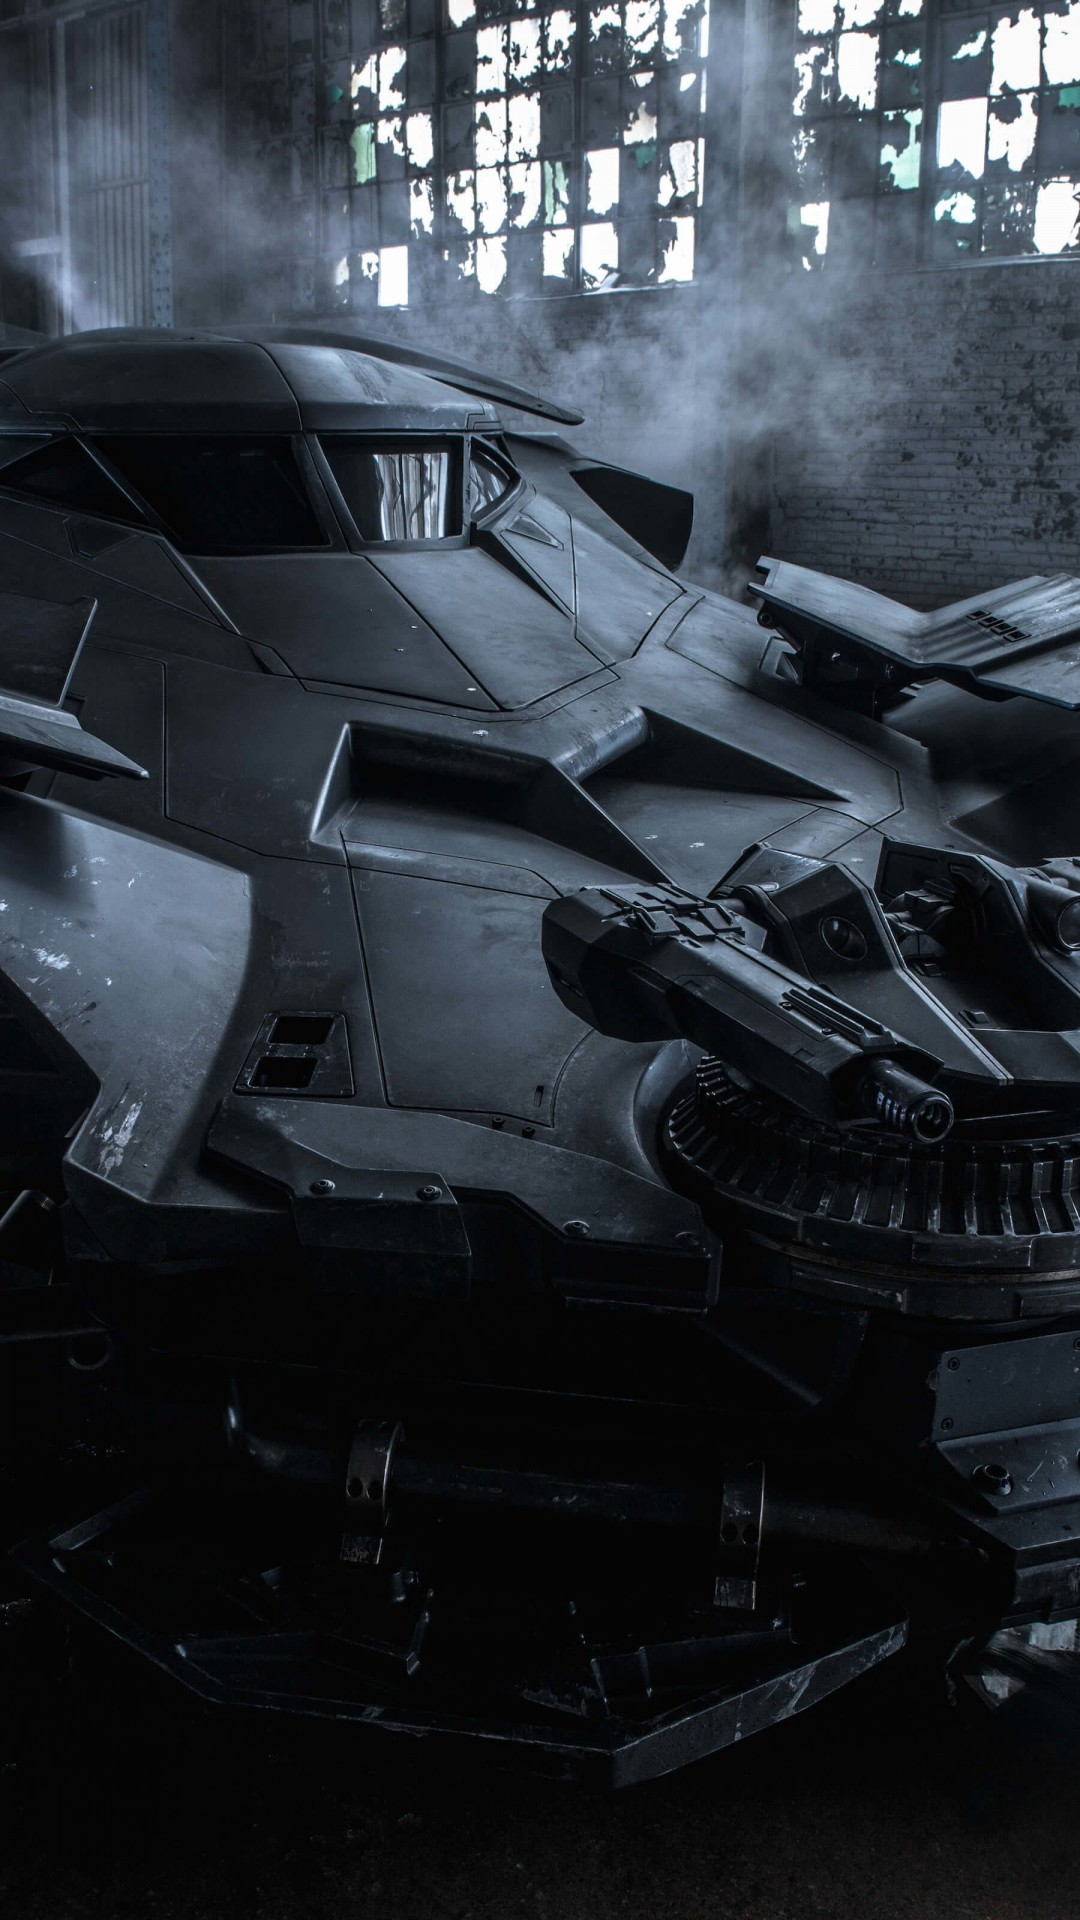 The Batman v Superman Batmobile Wallpaper for LG G2